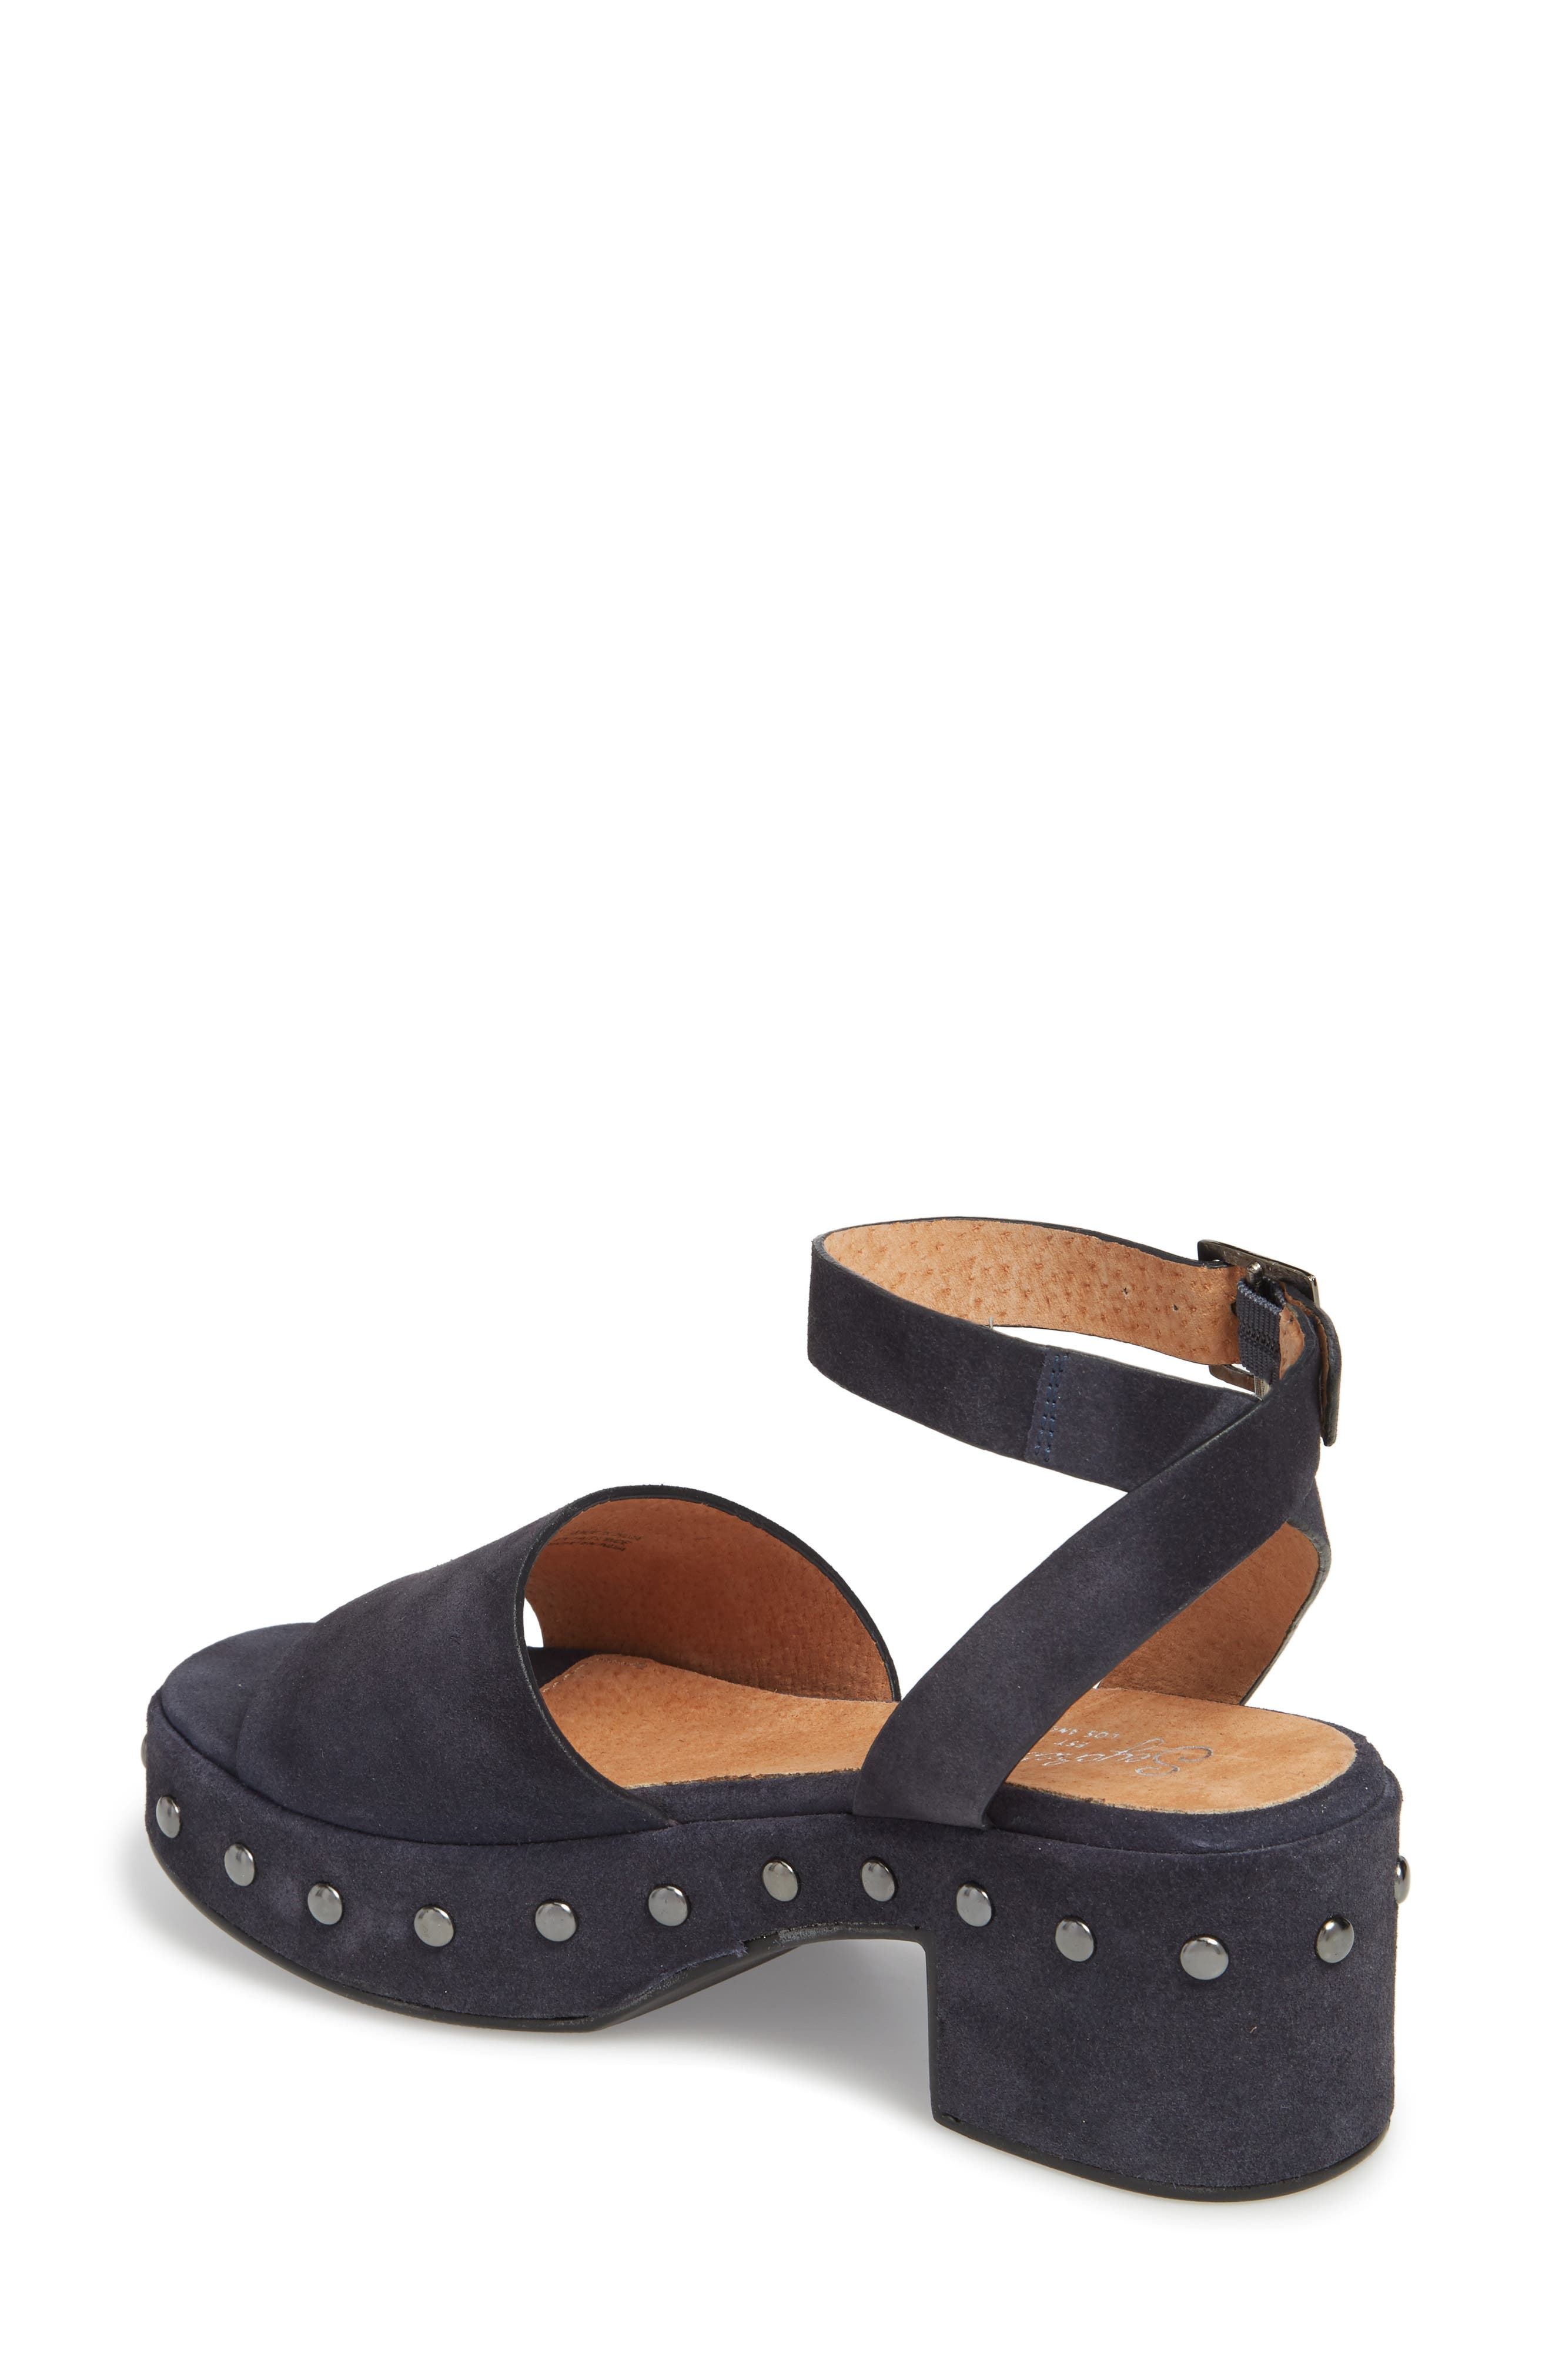 Spare Moments Sandal,                             Alternate thumbnail 2, color,                             NAVY SUEDE